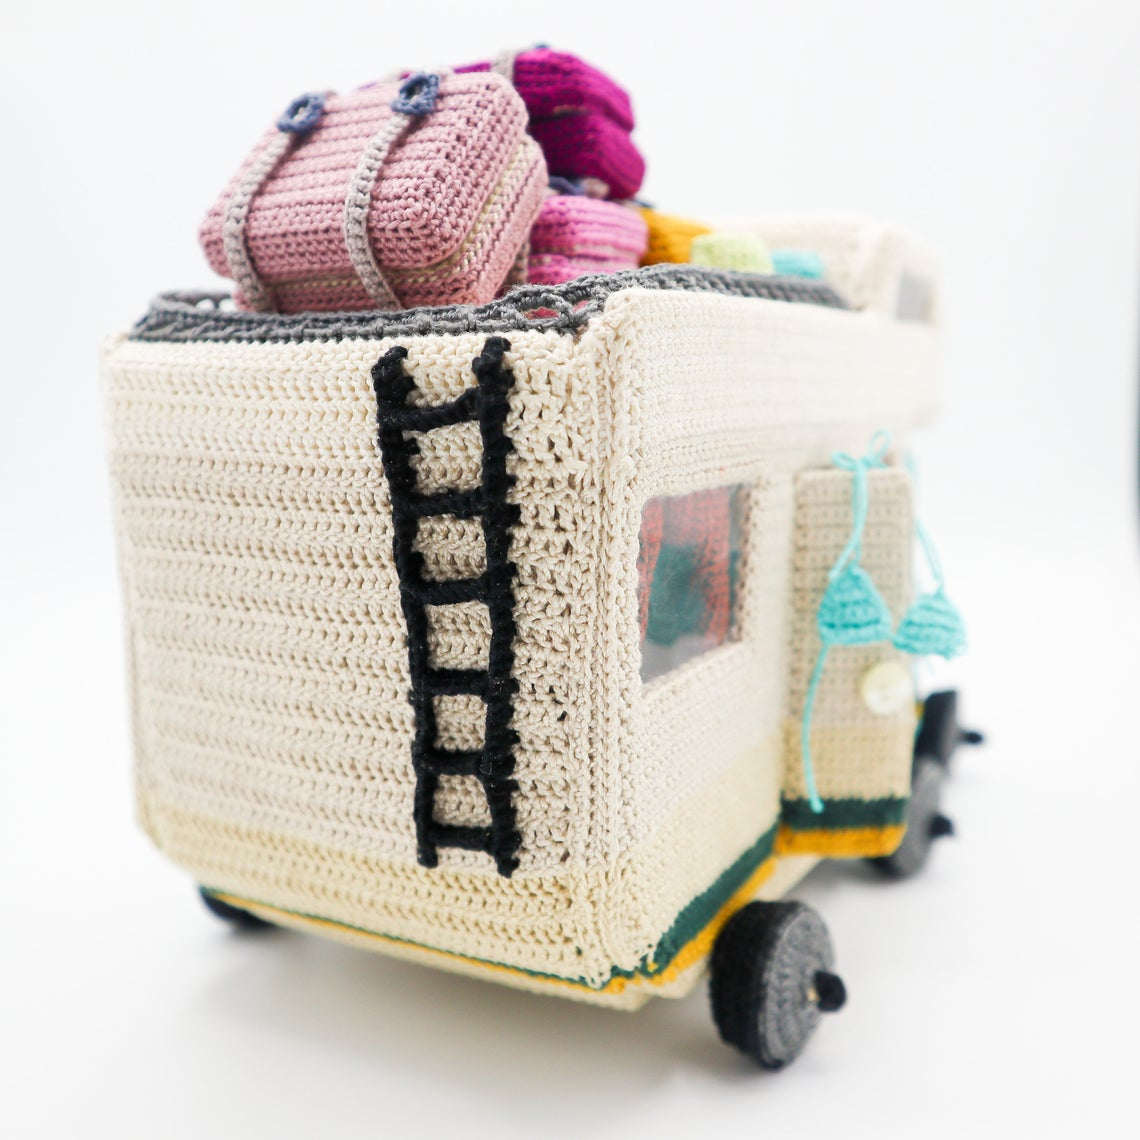 Incredible Crochet Caravan Pattern With a Ton Of Accessories To Boot ... Maximum Points For Giftability!